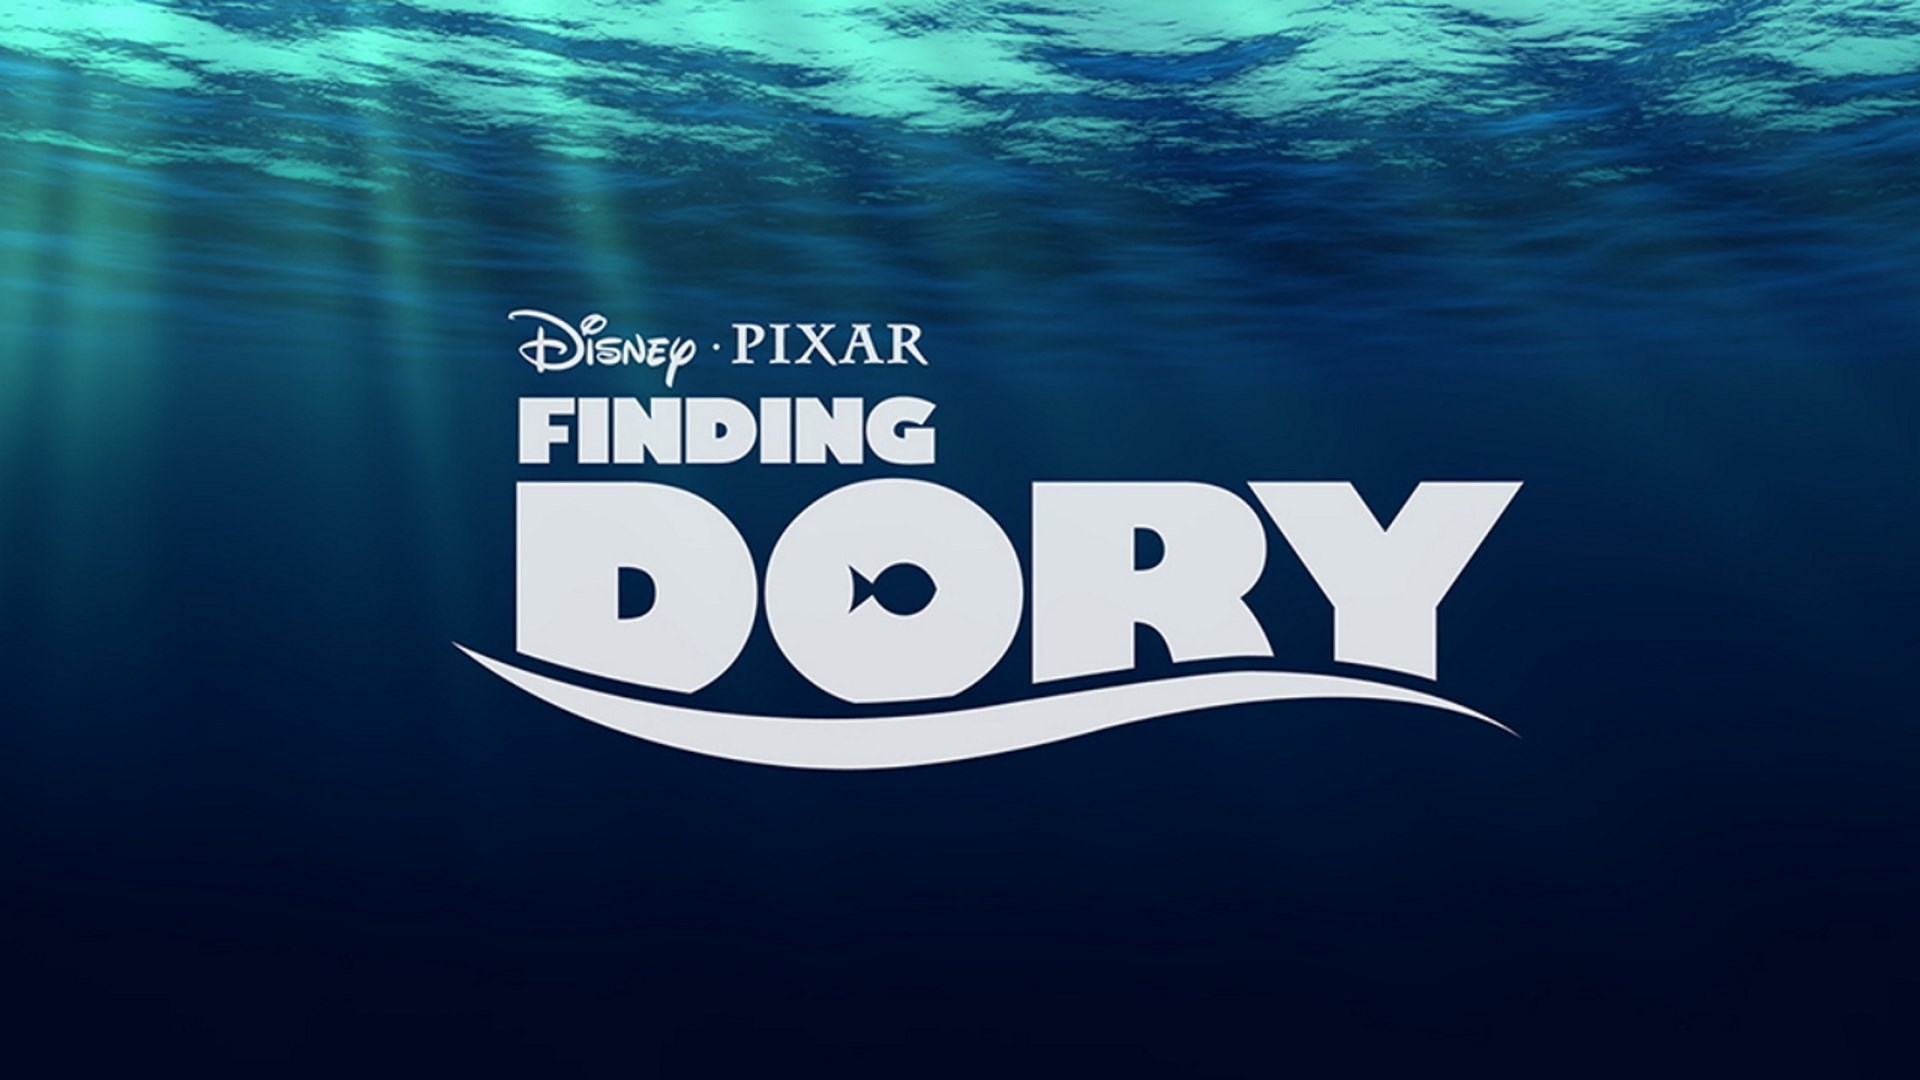 finding-dory-hd-1920x1080-kB-wallpaper-wp3405519